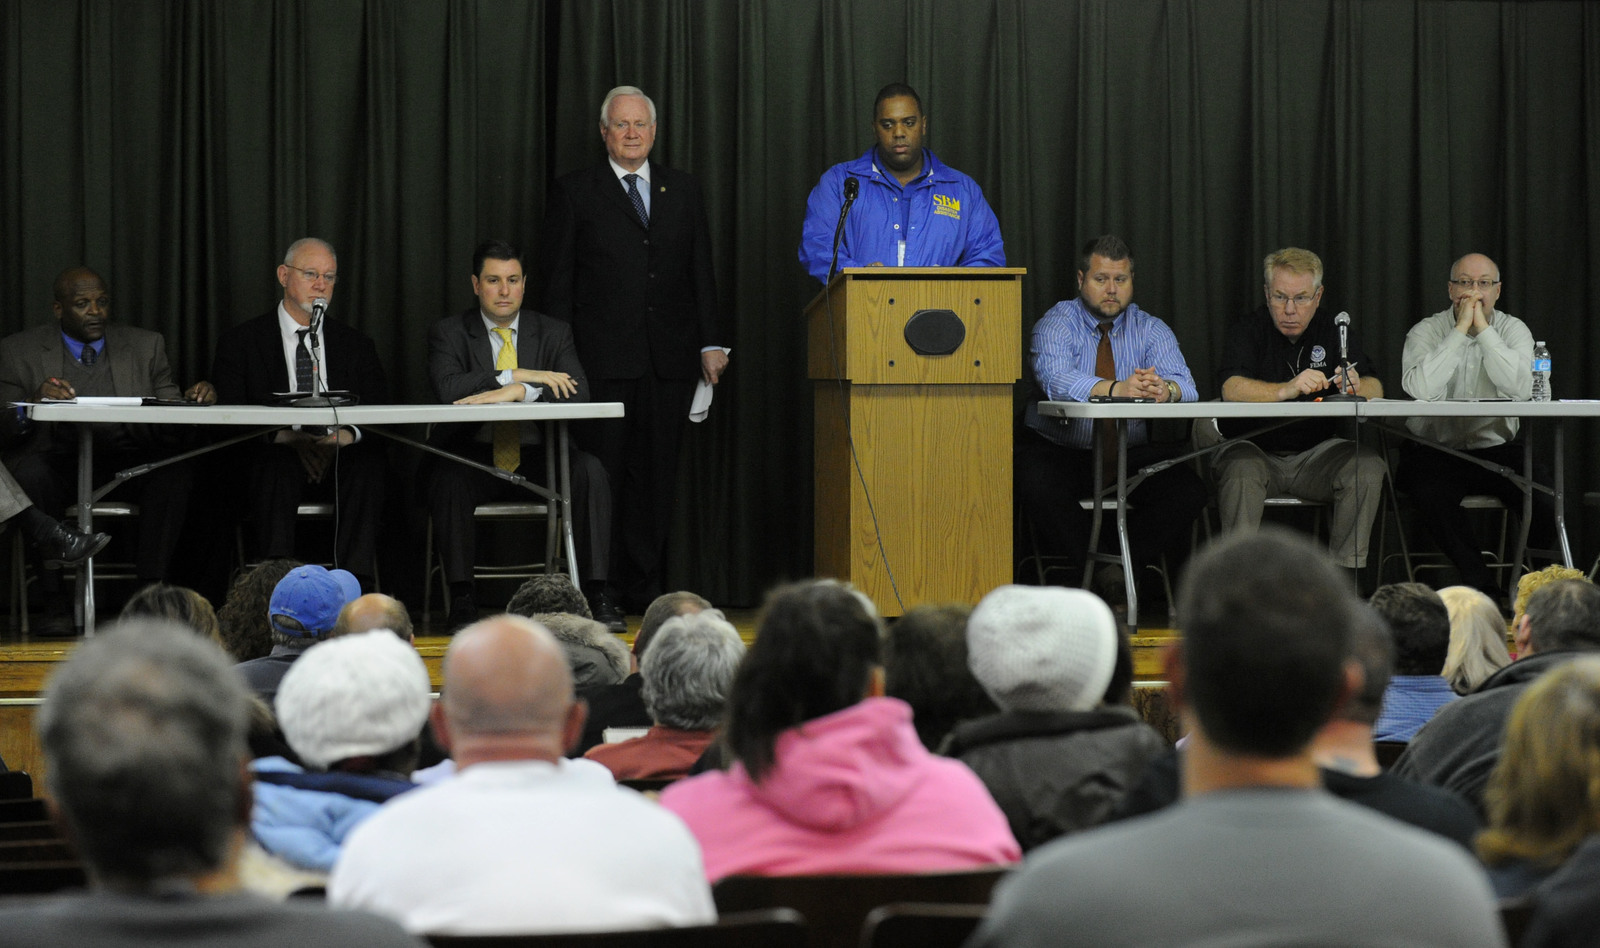 New York, N.Y., Dec. 11, 2012 --Small Business Administration (SBA) Public Affairs Specialist Andre Ledgister, at podium, answers questions from the audience regarding SBA loans.  A town hall meeting was held with local, state and federal officials at public school 277, to discuss issues surrounding the Gerritson Beach community.  Residents who have not yet applied for assistance and were impacted by Hurricane Sandy are encouraged to apply for assistance.  Jocelyn Augustino/FEMA